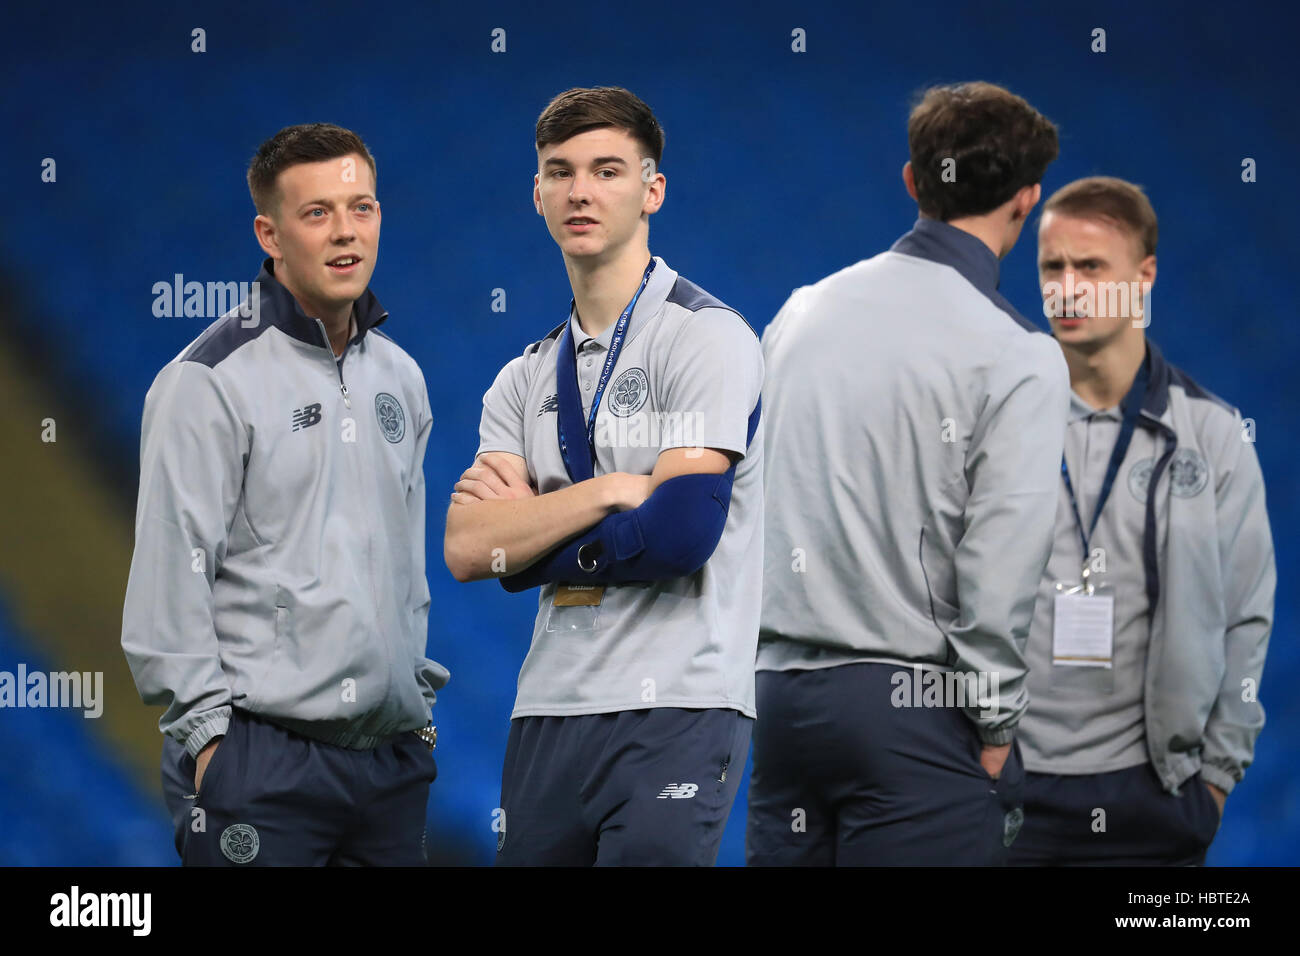 Celtic's Kieran Tierney and Callum McGregor (left) before the UEFA Champions League, Group C match at the Etihad - Stock Image